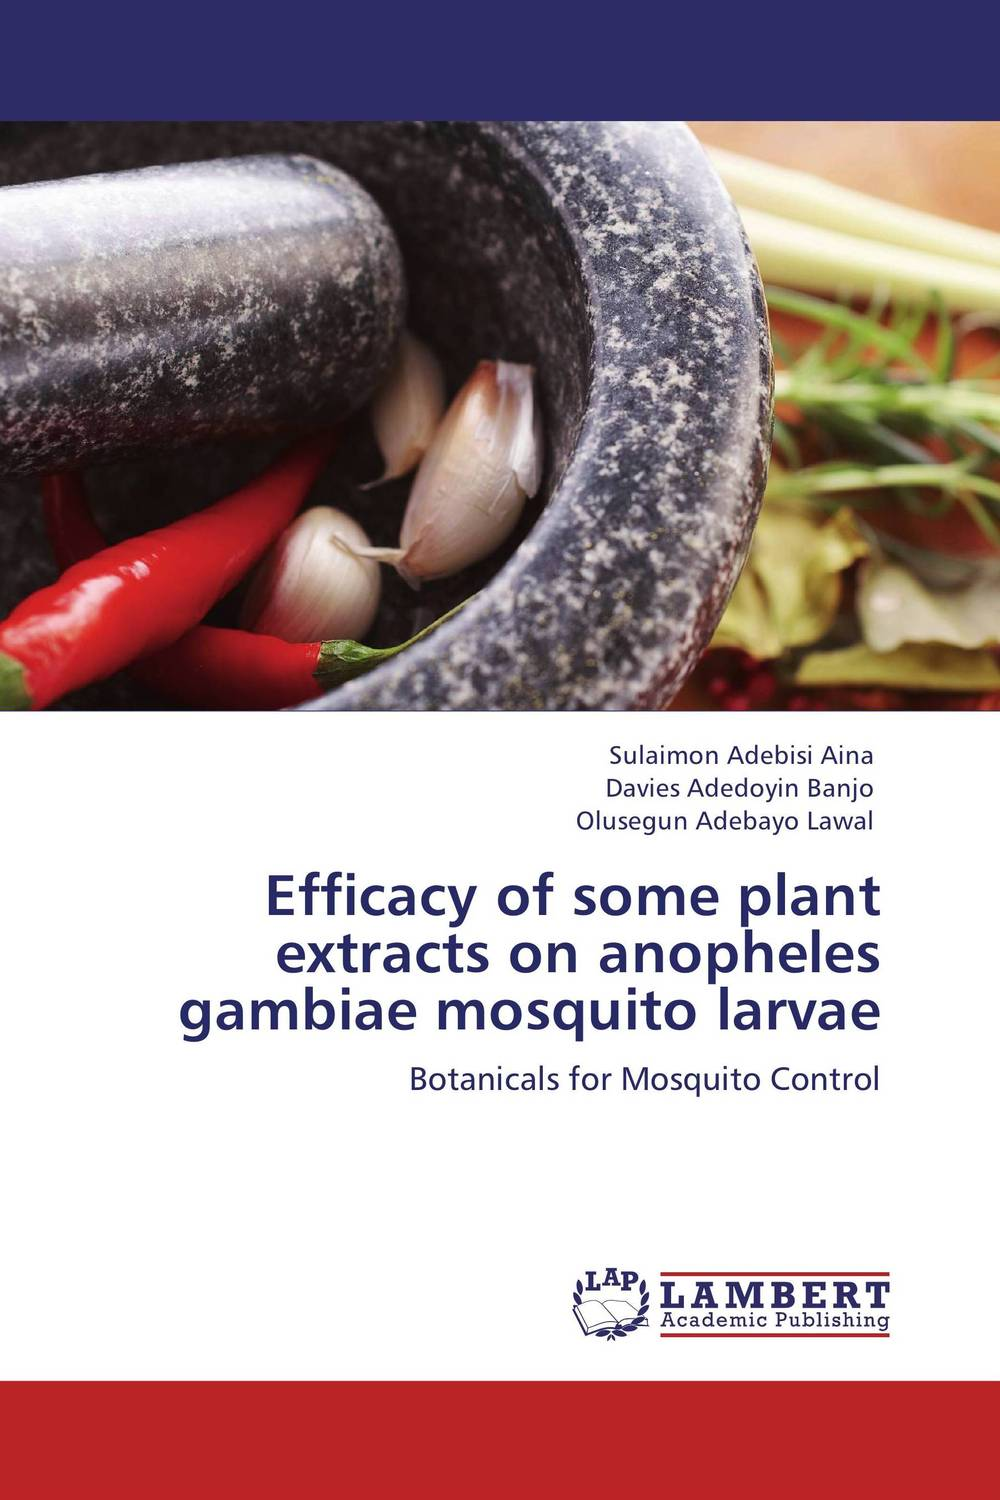 Efficacy of some plant extracts on anopheles gambiae mosquito larvae functional capacity of mango leave extracts